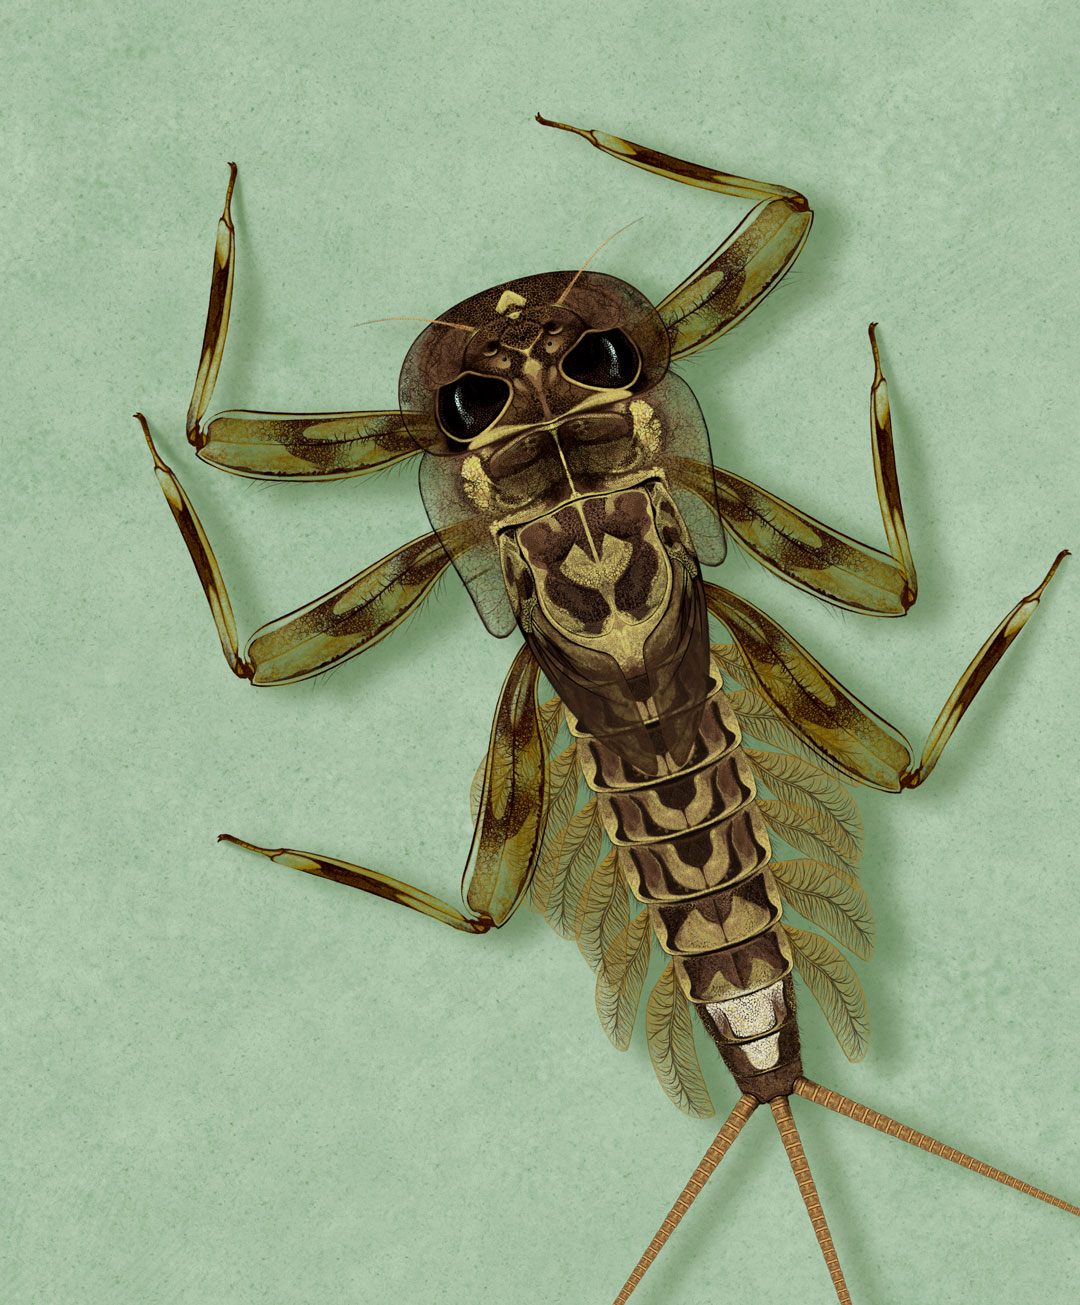 Fly Fishing Projects. Flat nymph (Ecdyonurus sp). Art by Román García Mora.